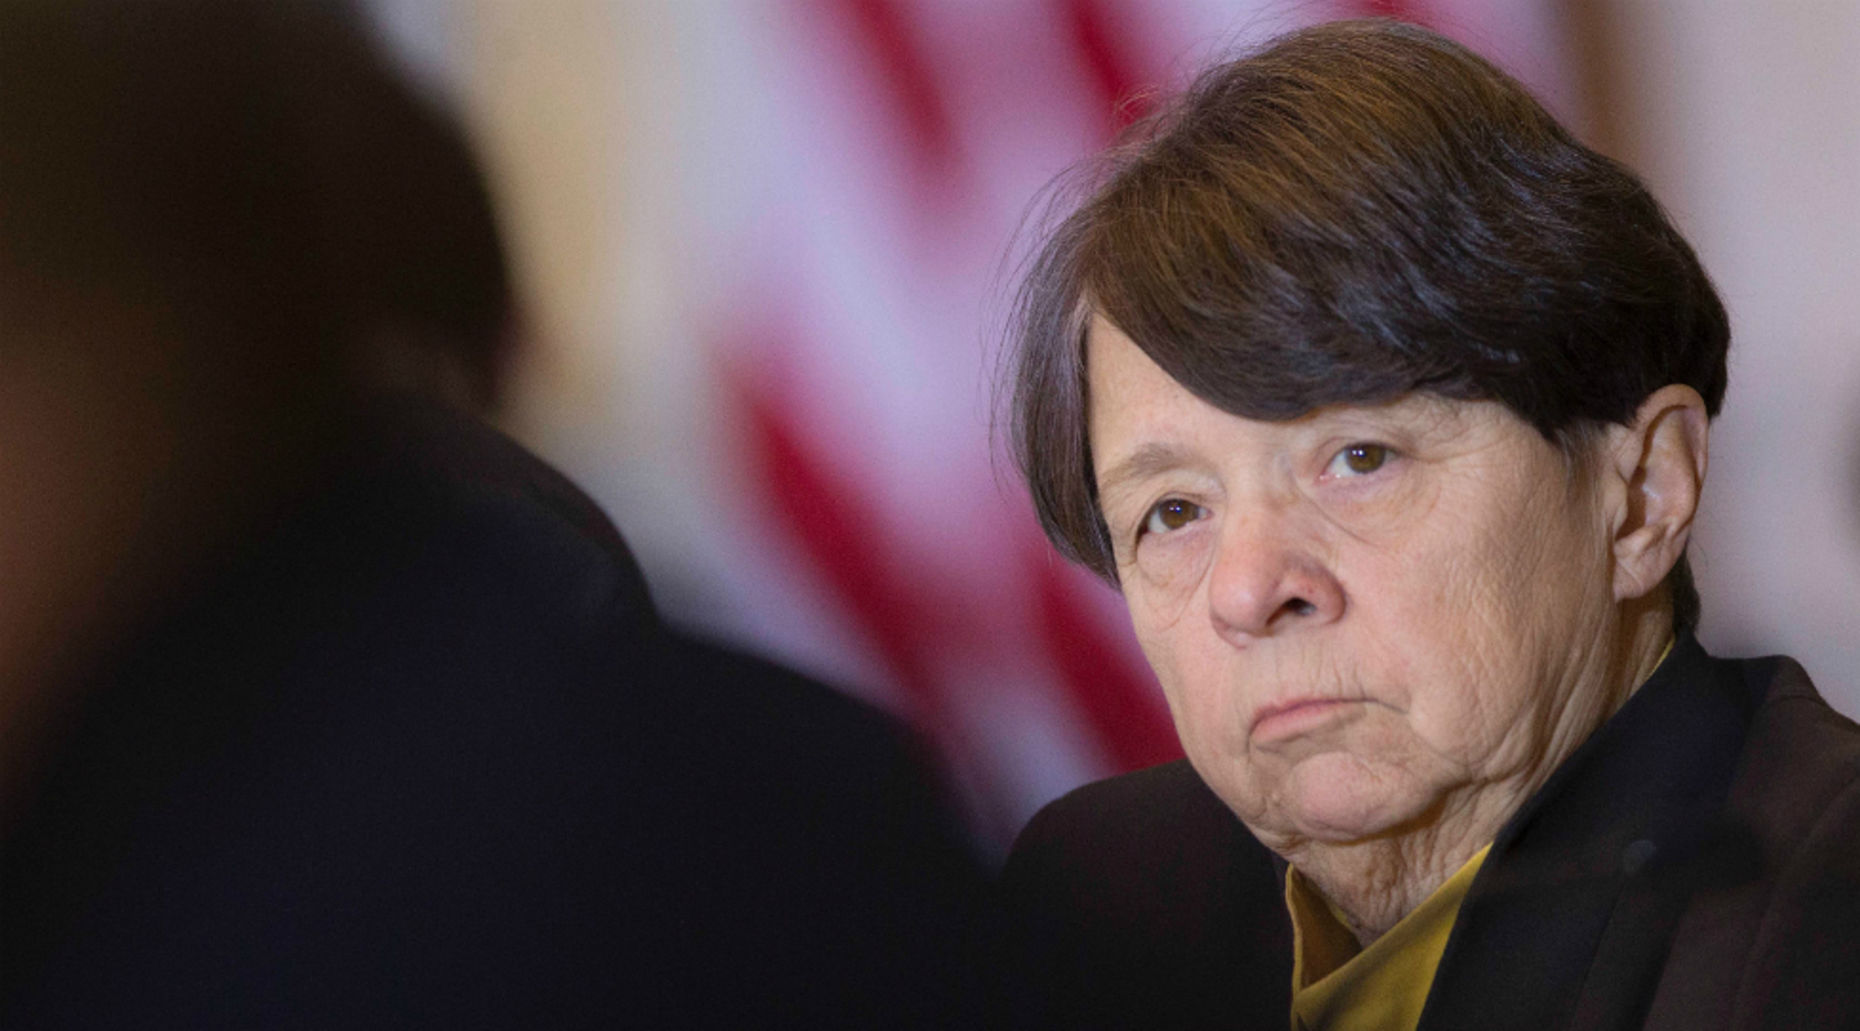 SEC Chairwoman Mary Jo White. Photo by Bloomberg.